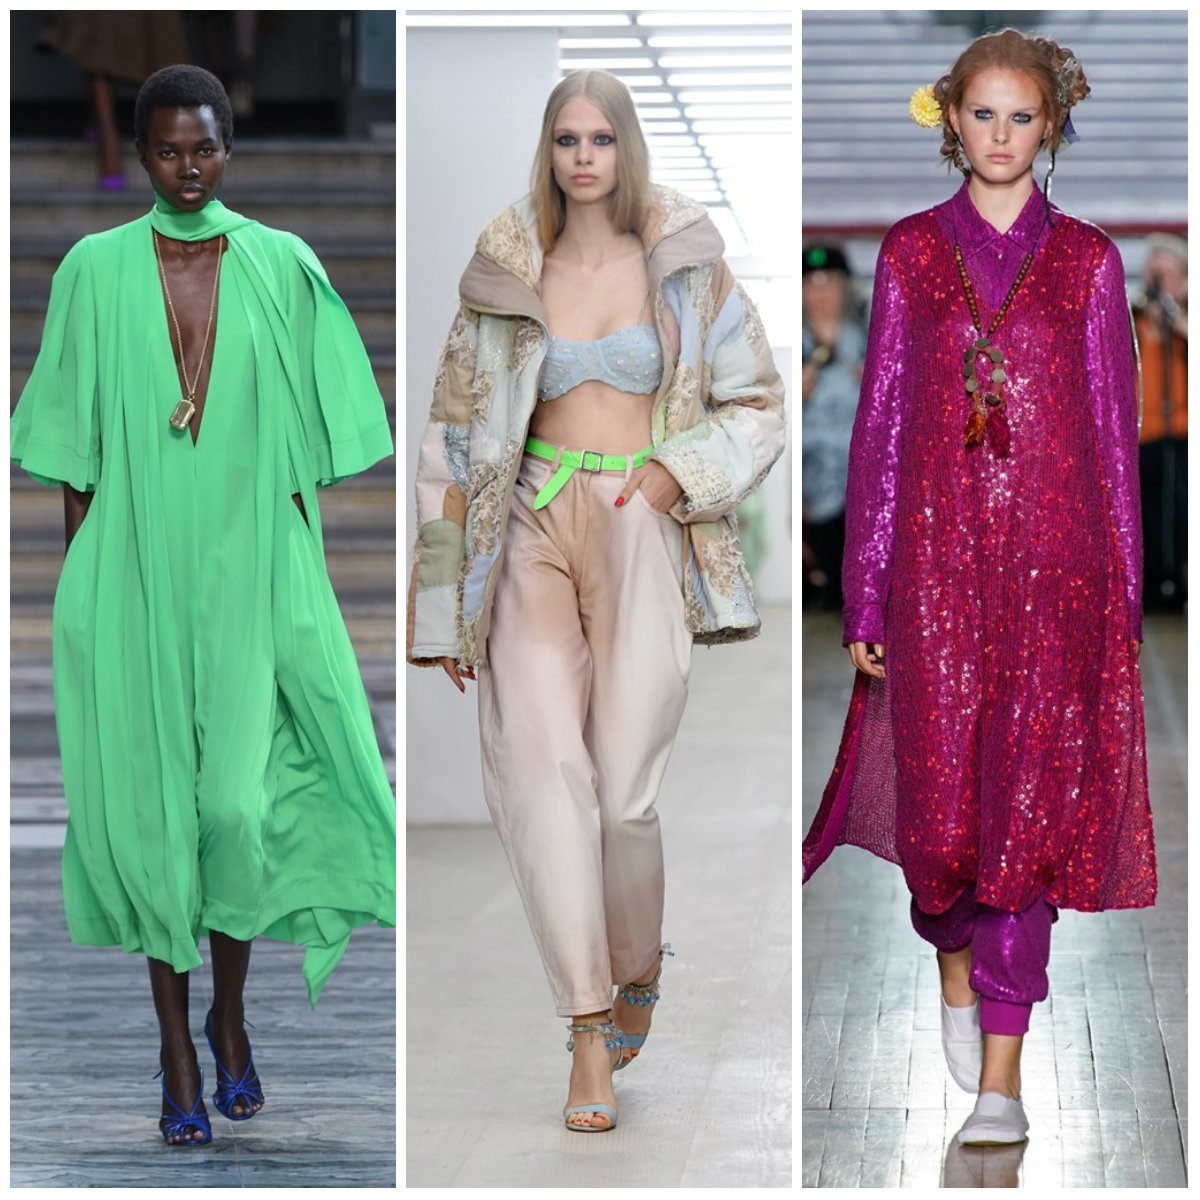 Summer Trends 2020.Fashion Studio Magazine Fashion Trends Ss 2020